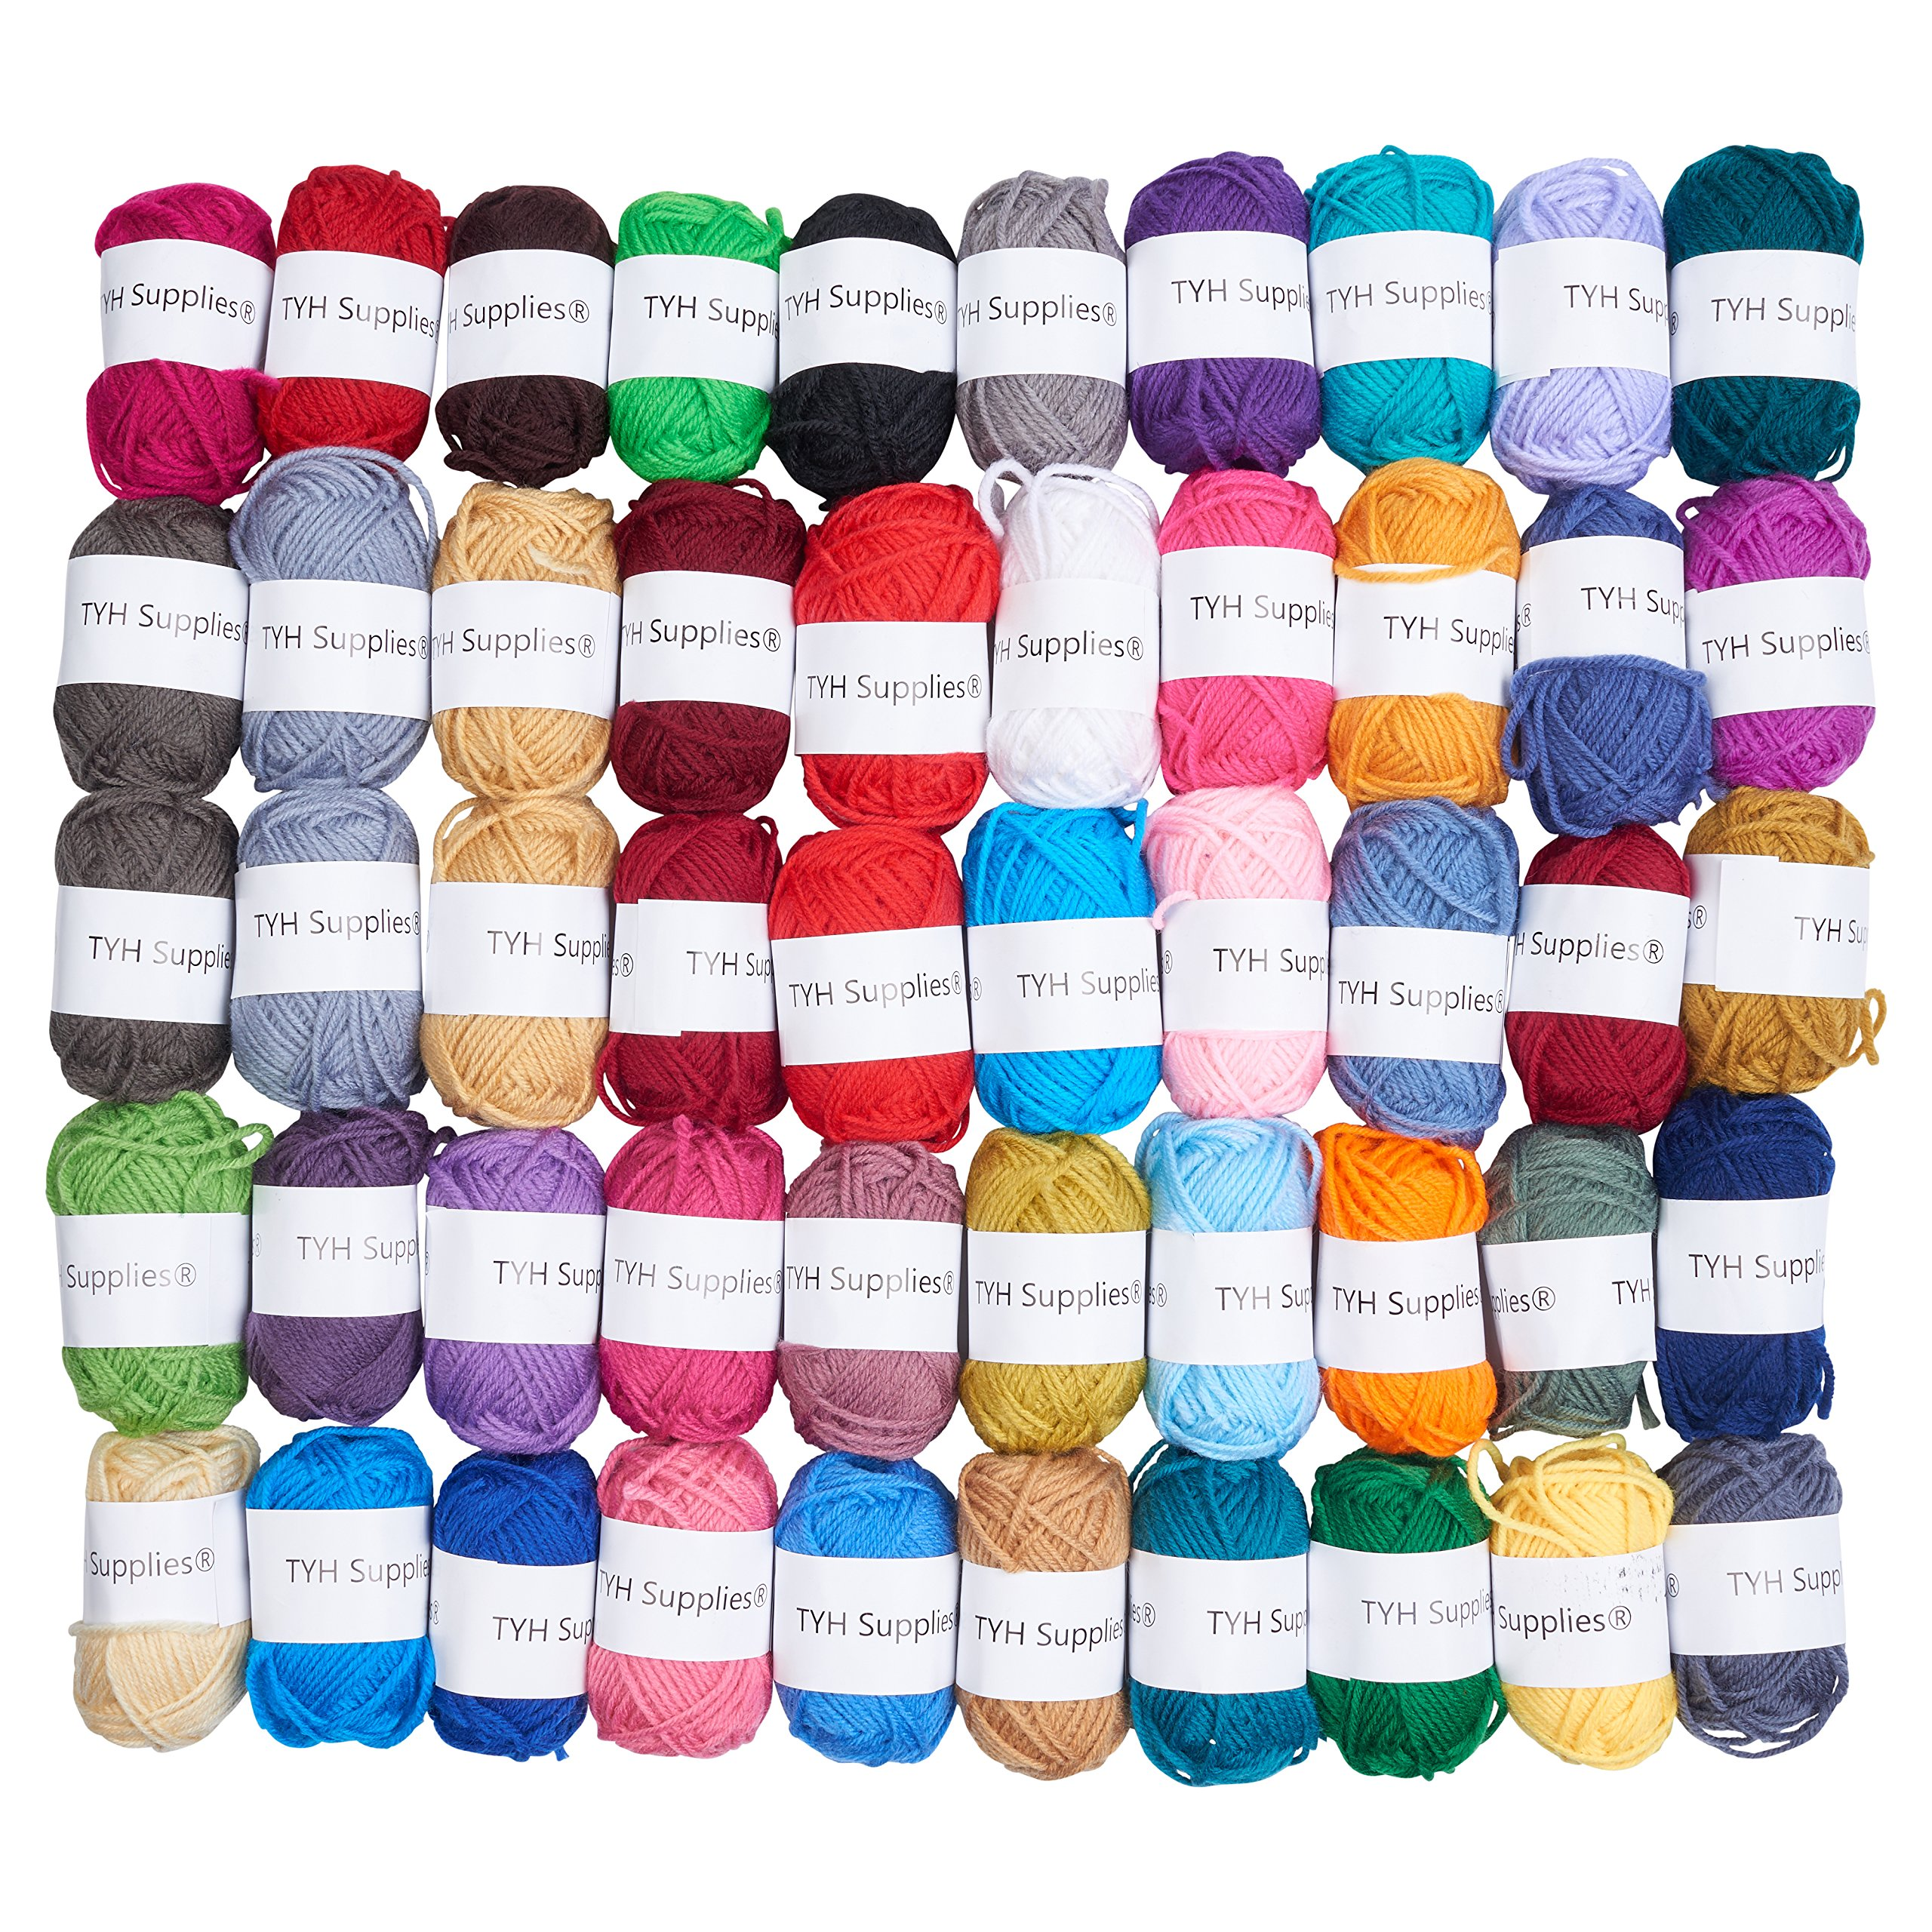 TYH Supplies 50-Pack 44 Yard Acrylic Yarn Assorted Colors Skeins - Perfect for Mini Knitting and Crochet Project